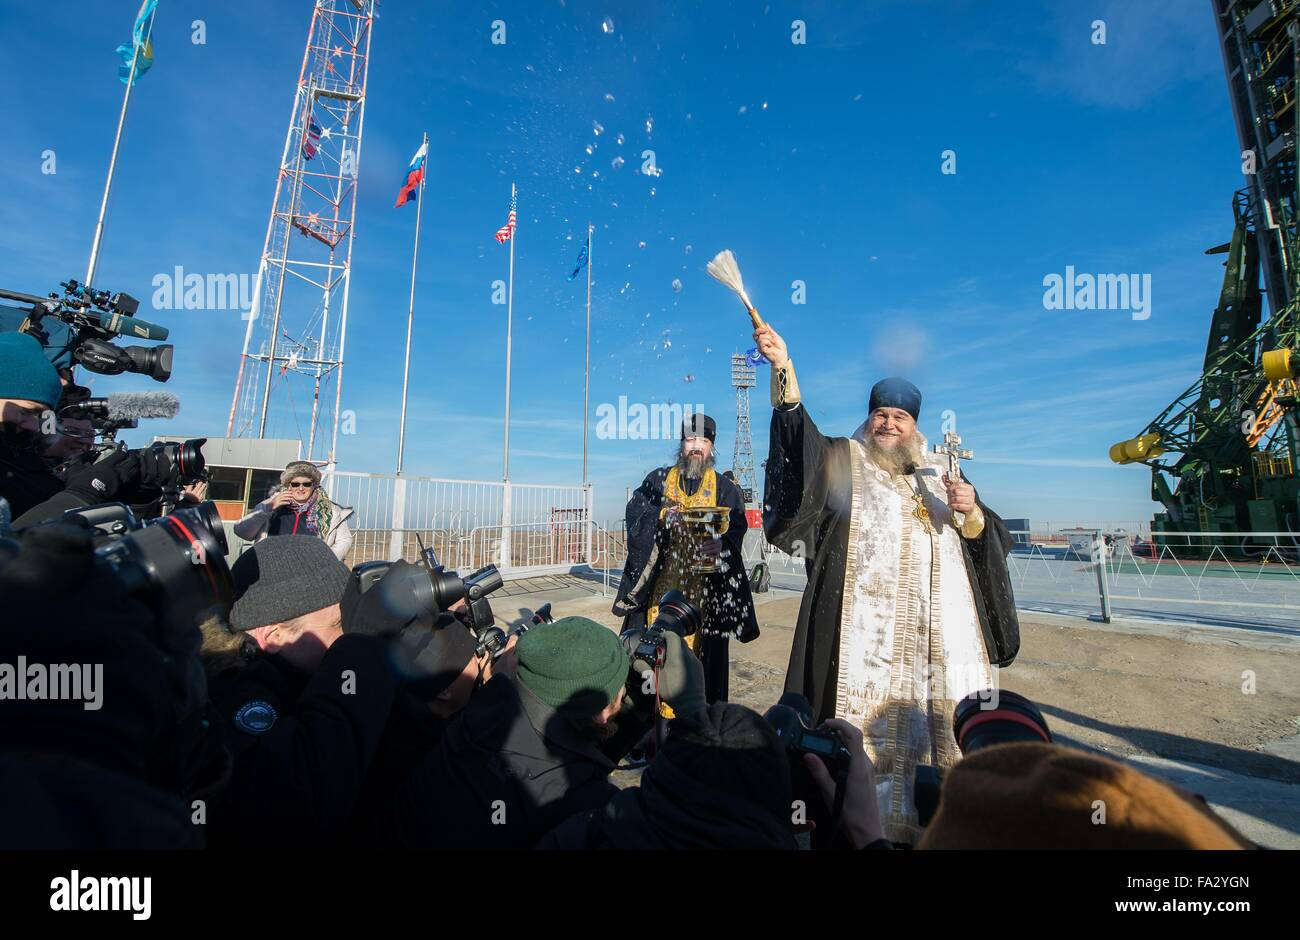 A Russian Orthodox priest blesses the Soyuz TMA-19M spacecraft at the Baikonur Cosmodrome launch pad December 14, - Stock Image